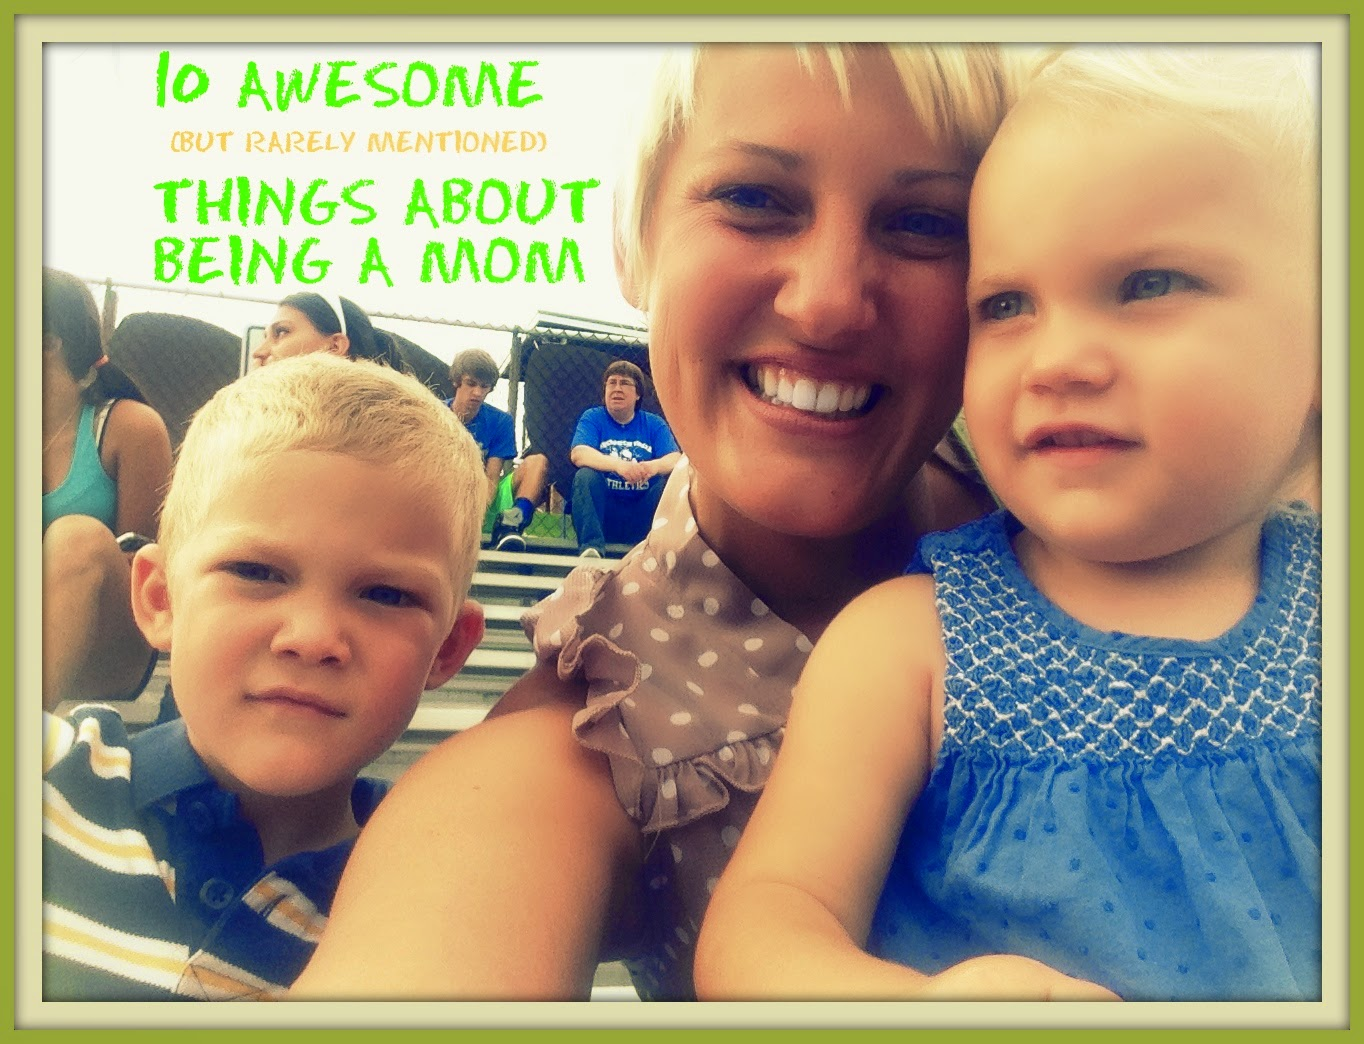 10 Awesome Things about Being a Mom